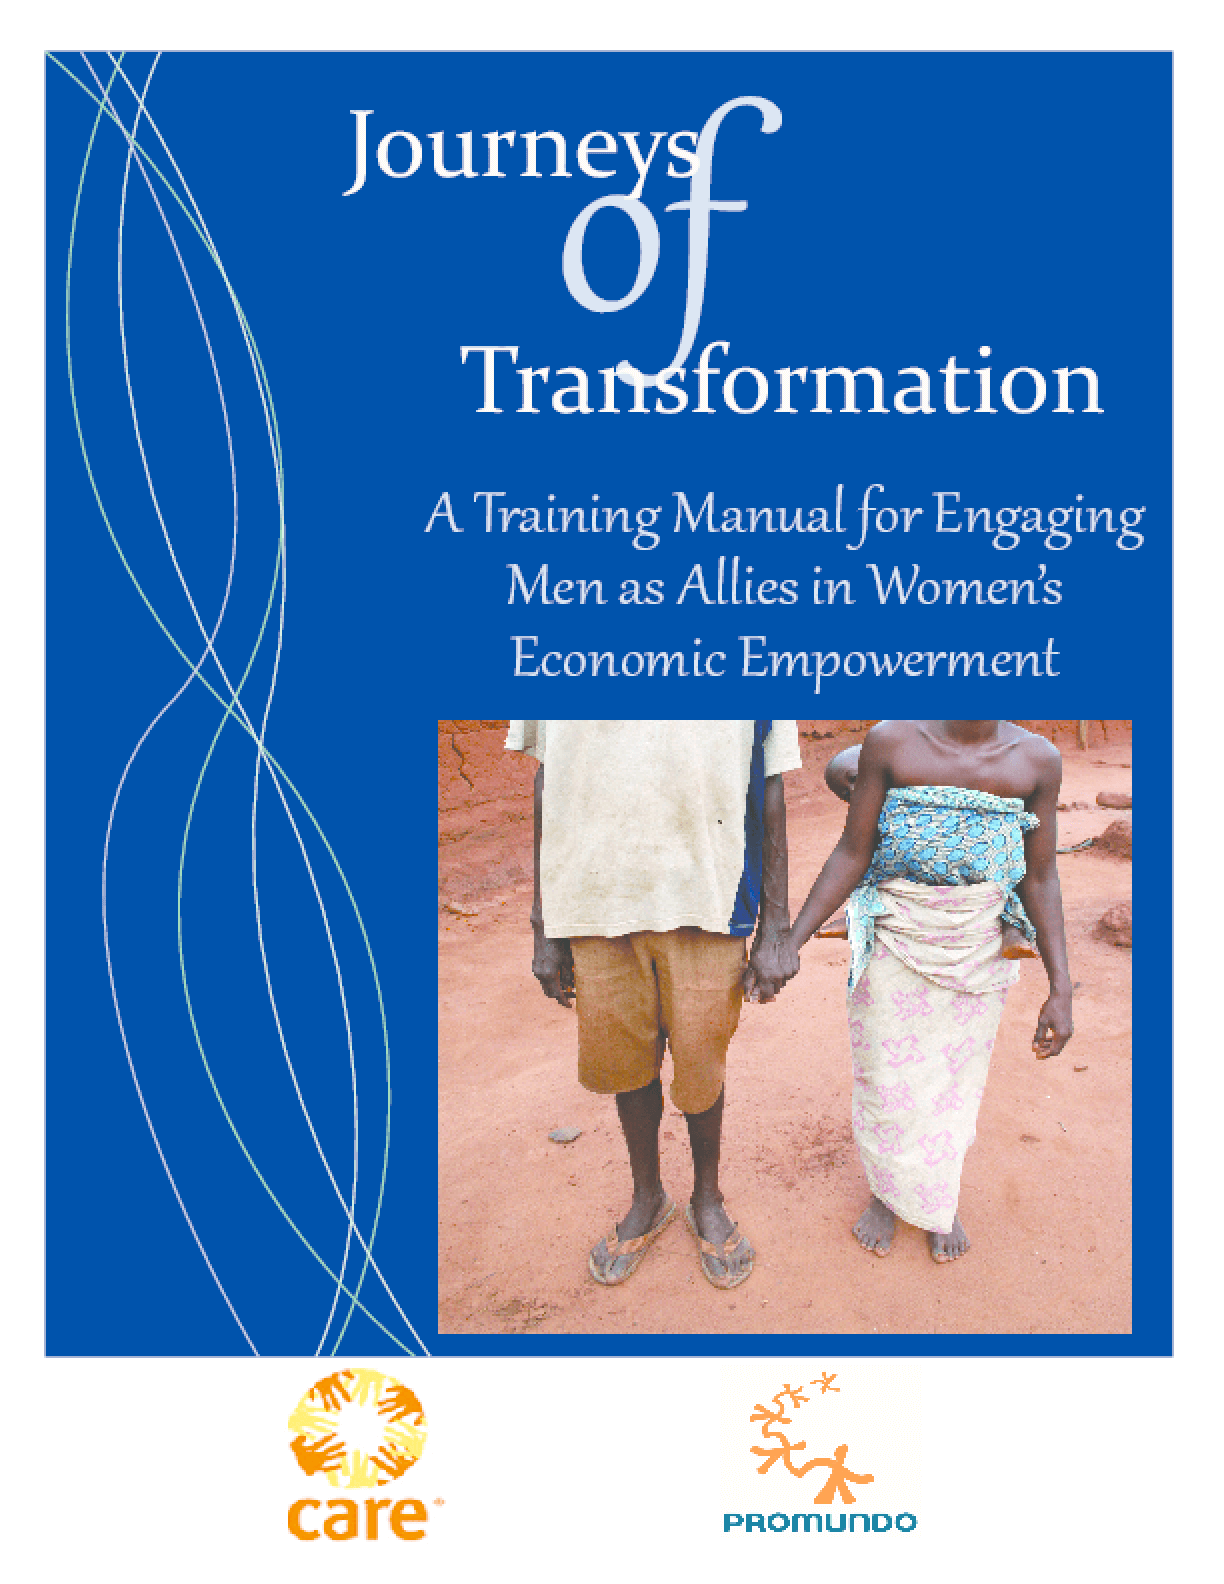 Journeys of Transformation: A Training Manual for Engaging Men as Allies in Women's Economic Empowerment